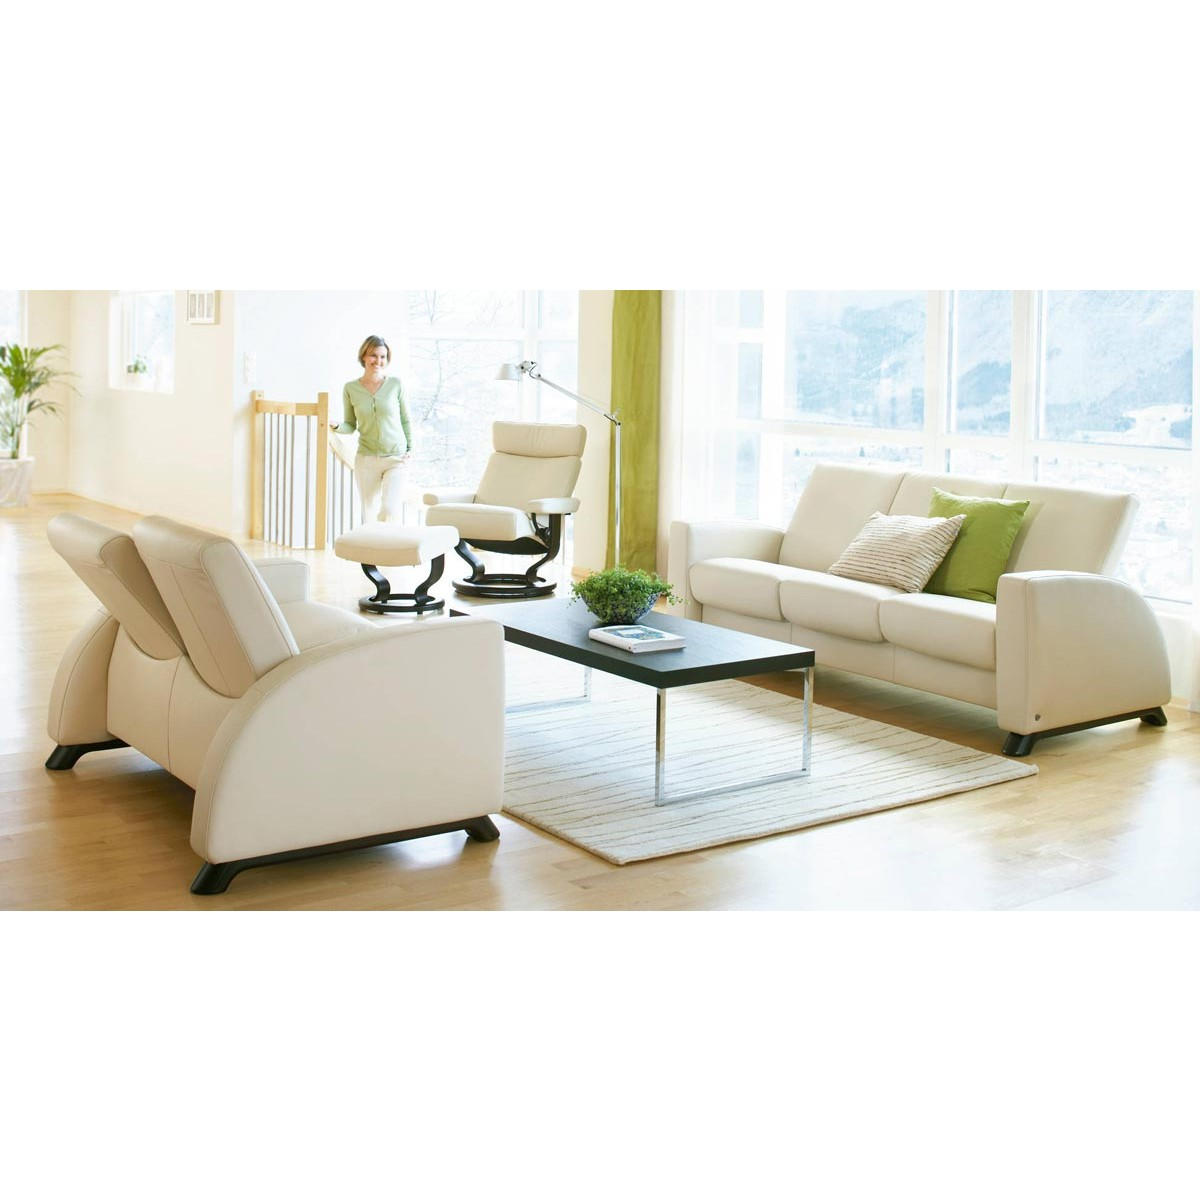 Stressless Arion Low Back Chair From 2